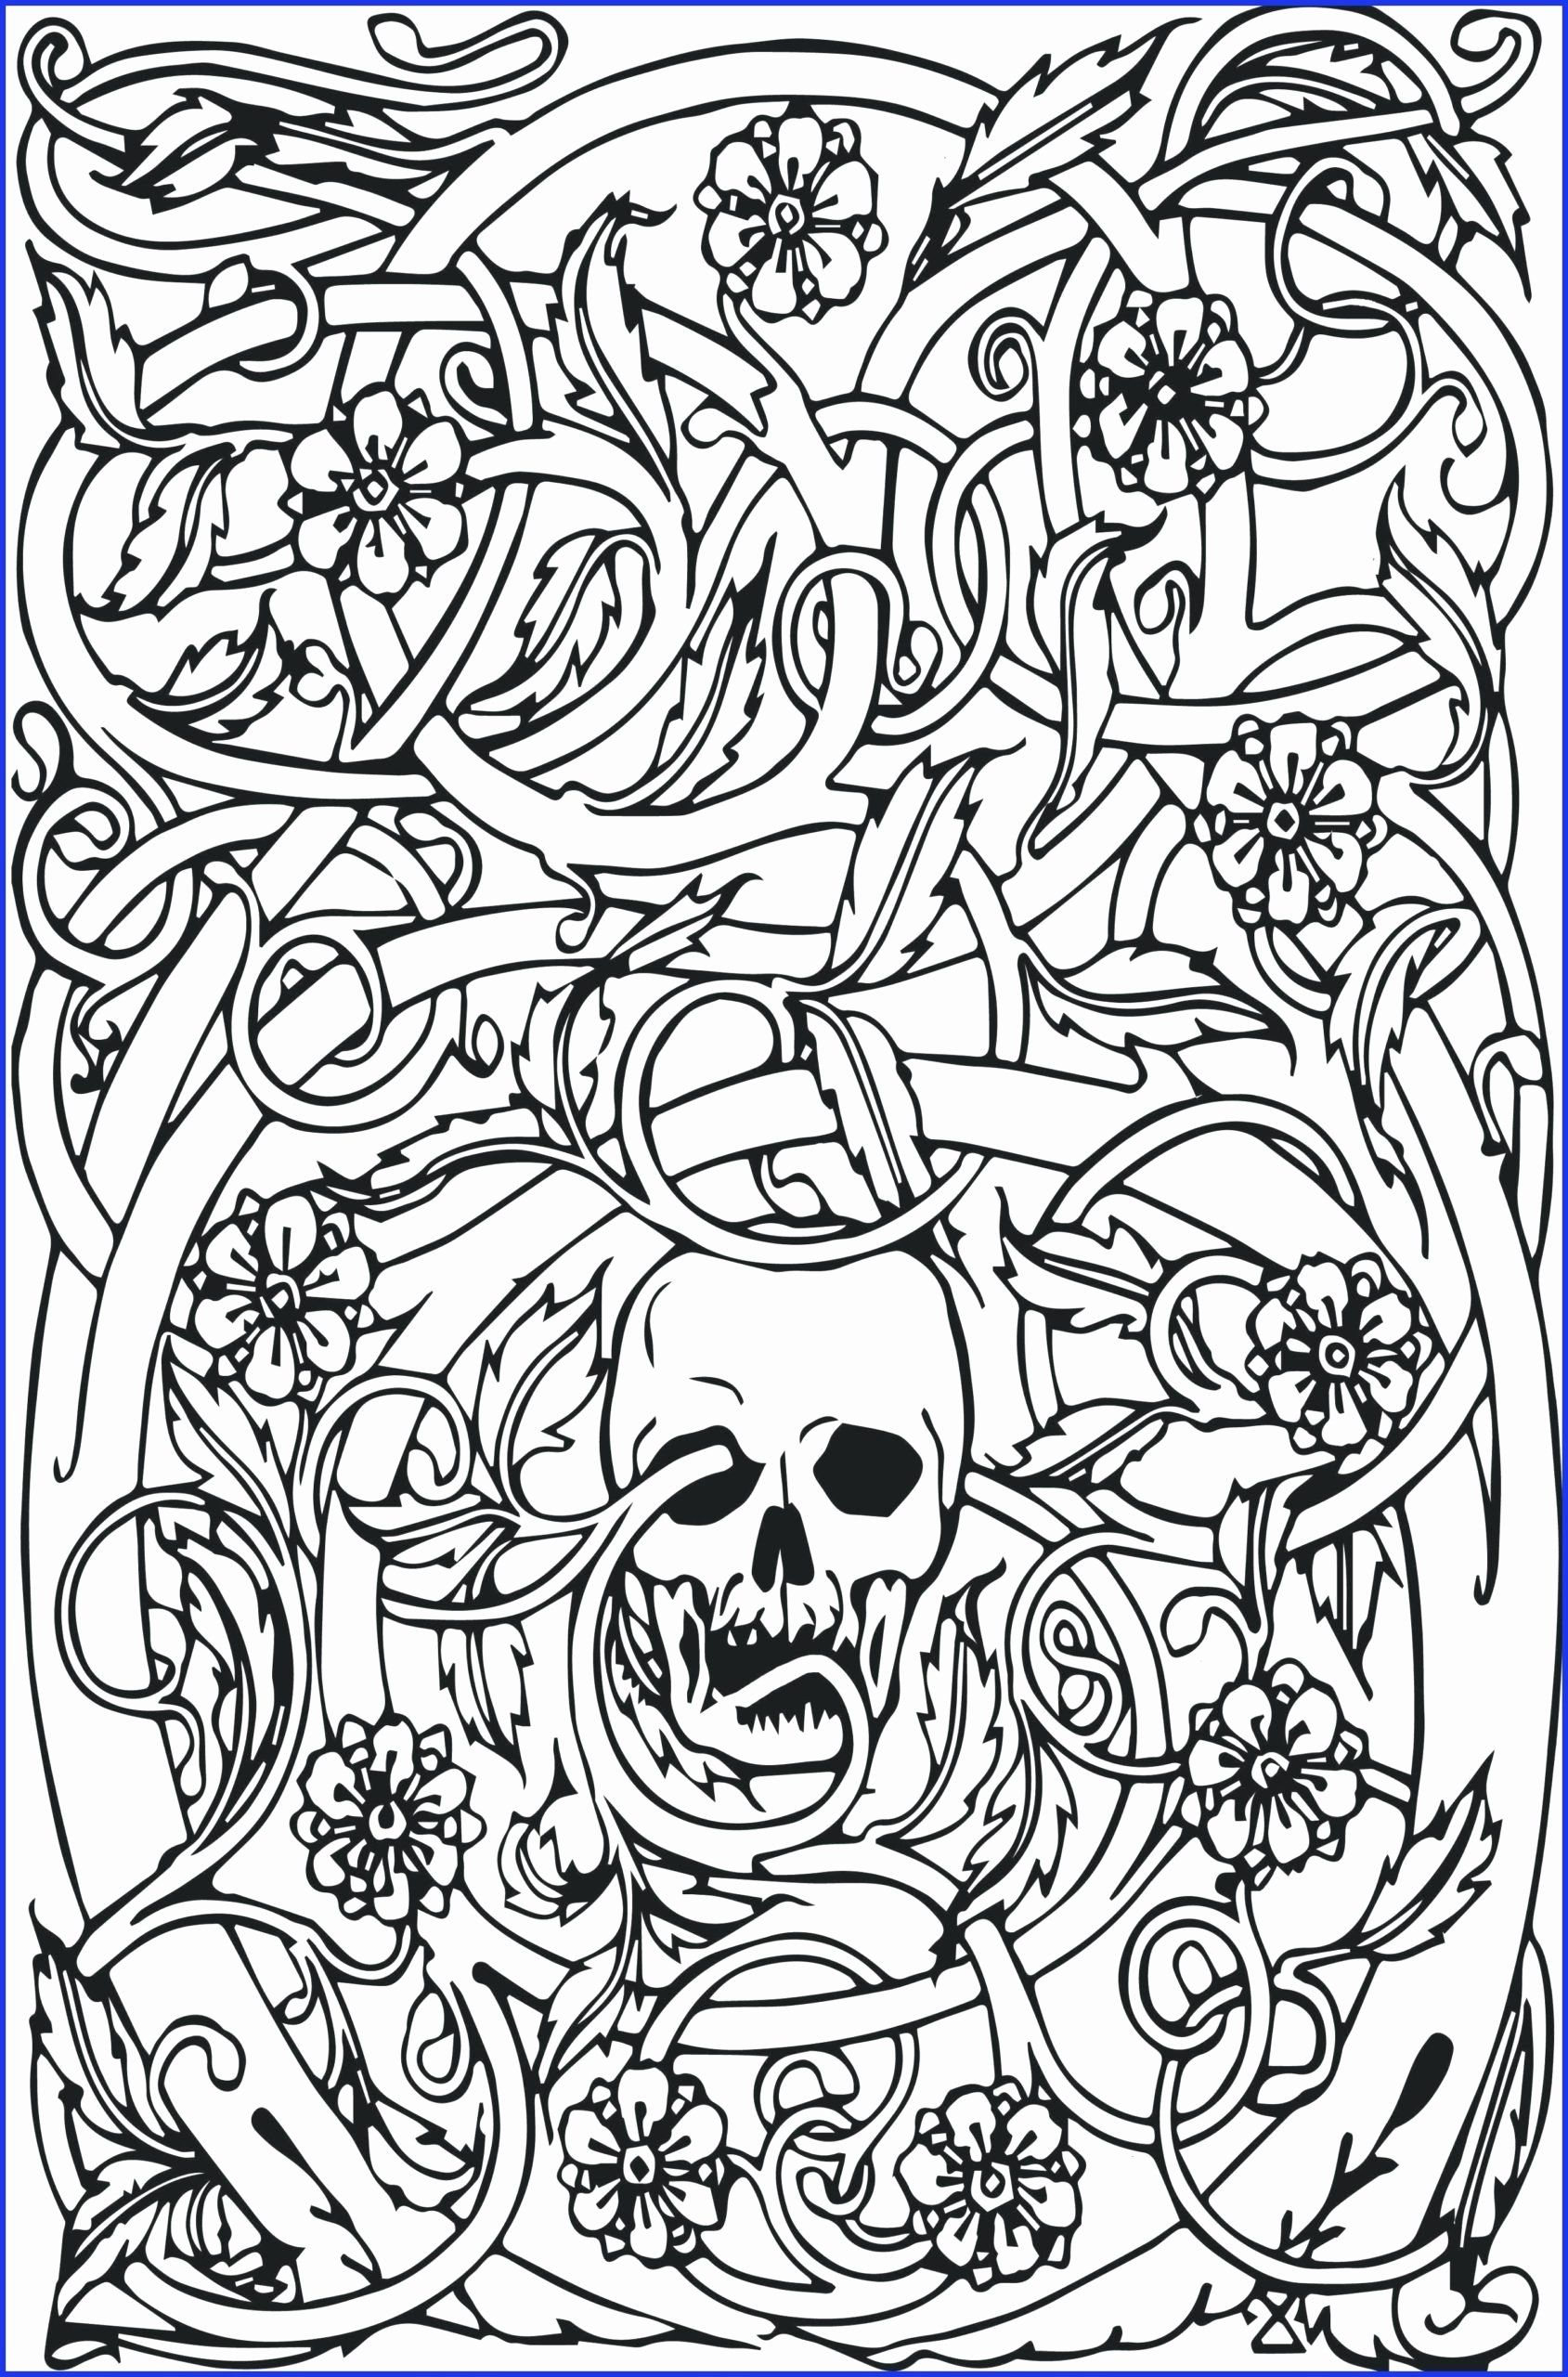 Word Coloring Page Generator Lovely Mandala Word Coloring Pages Skull Coloring Pages Halloween Coloring Book Halloween Coloring Pages Printable